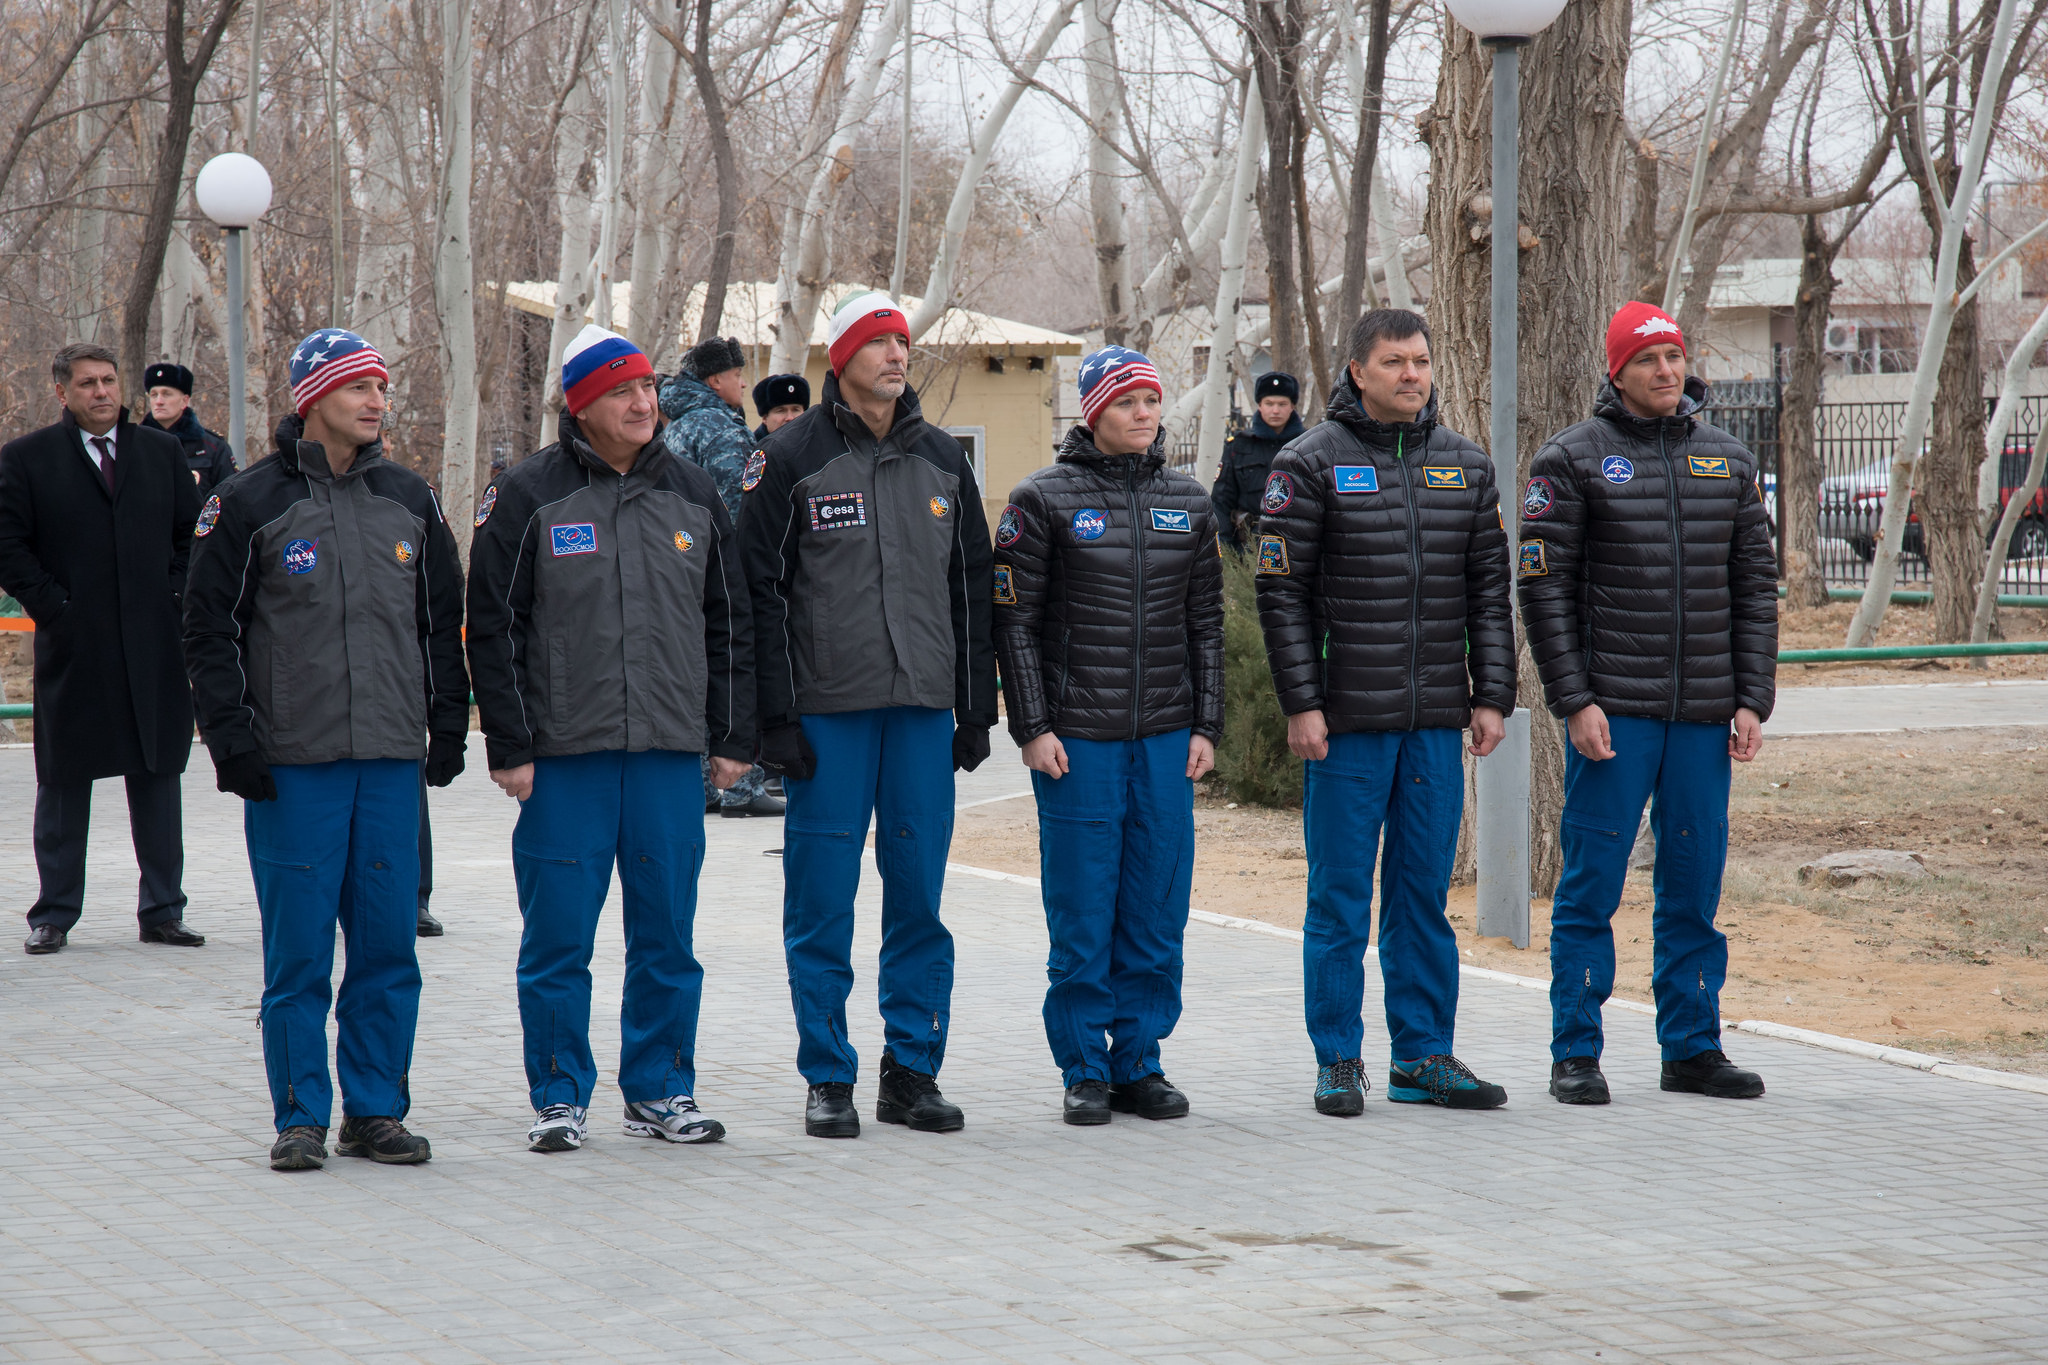 Outside the Cosmonaut Hotel crew quarters in Baikonur, Kazakhstan, the Expedition 58 prime and backup crew members attend a flag-raising ceremony Nov. 21, part of their traditional pre-launch activities. From left to right are backup crewmembers Drew Morgan of NASA, Alexander Skvortsov of Roscosmos and Luca Parmitano of the European Space Agency and prime crewmembers Anne McClain of NASA, Oleg Kononenko of Roscosmos and David Saint-Jacques of the Canadian Space Agency. McClain, Kononenko and Saint-Jacques will launch Dec. 3 on the Soyuz MS-11 spacecraft from the Baikonur Cosmodrome in Kazakhstan for a six-and-a-half month mission on the International Space Station